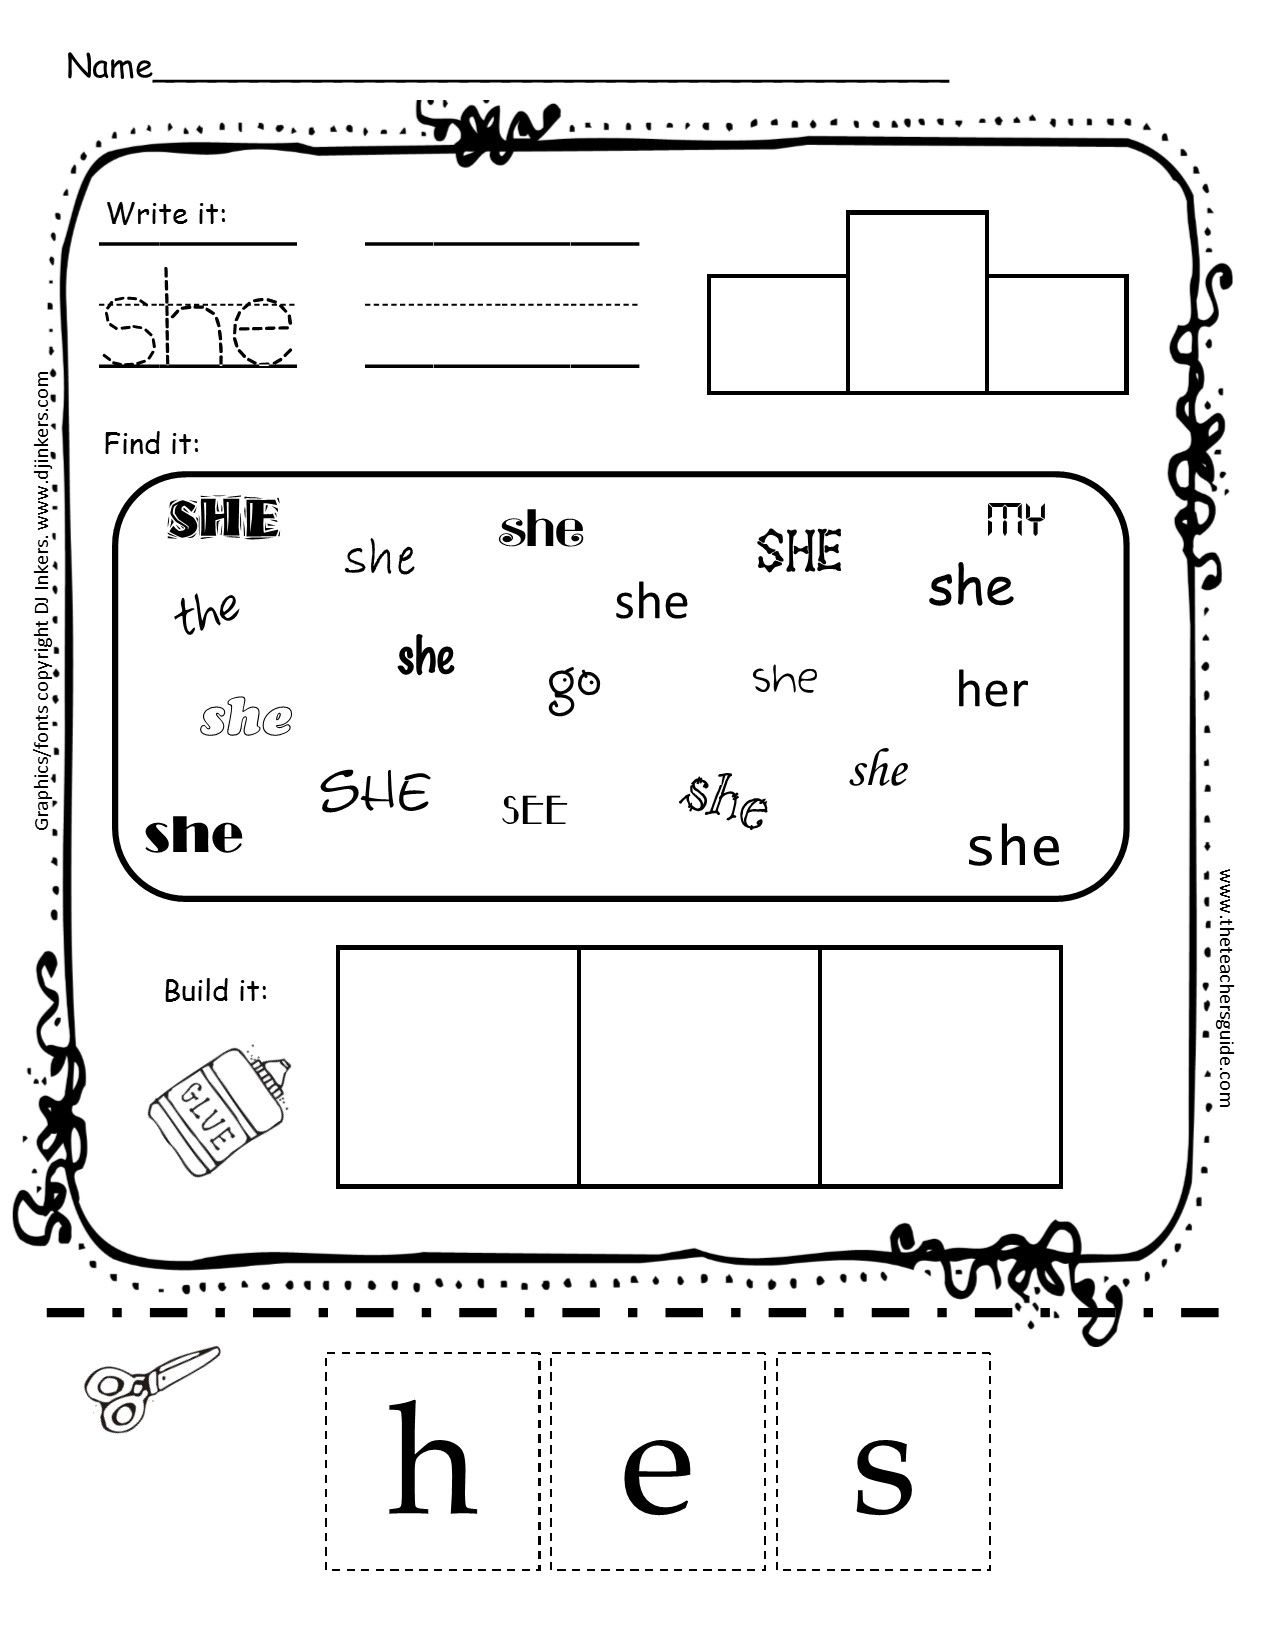 Kindergarten Sight Word Printouts From The Teachers Guide